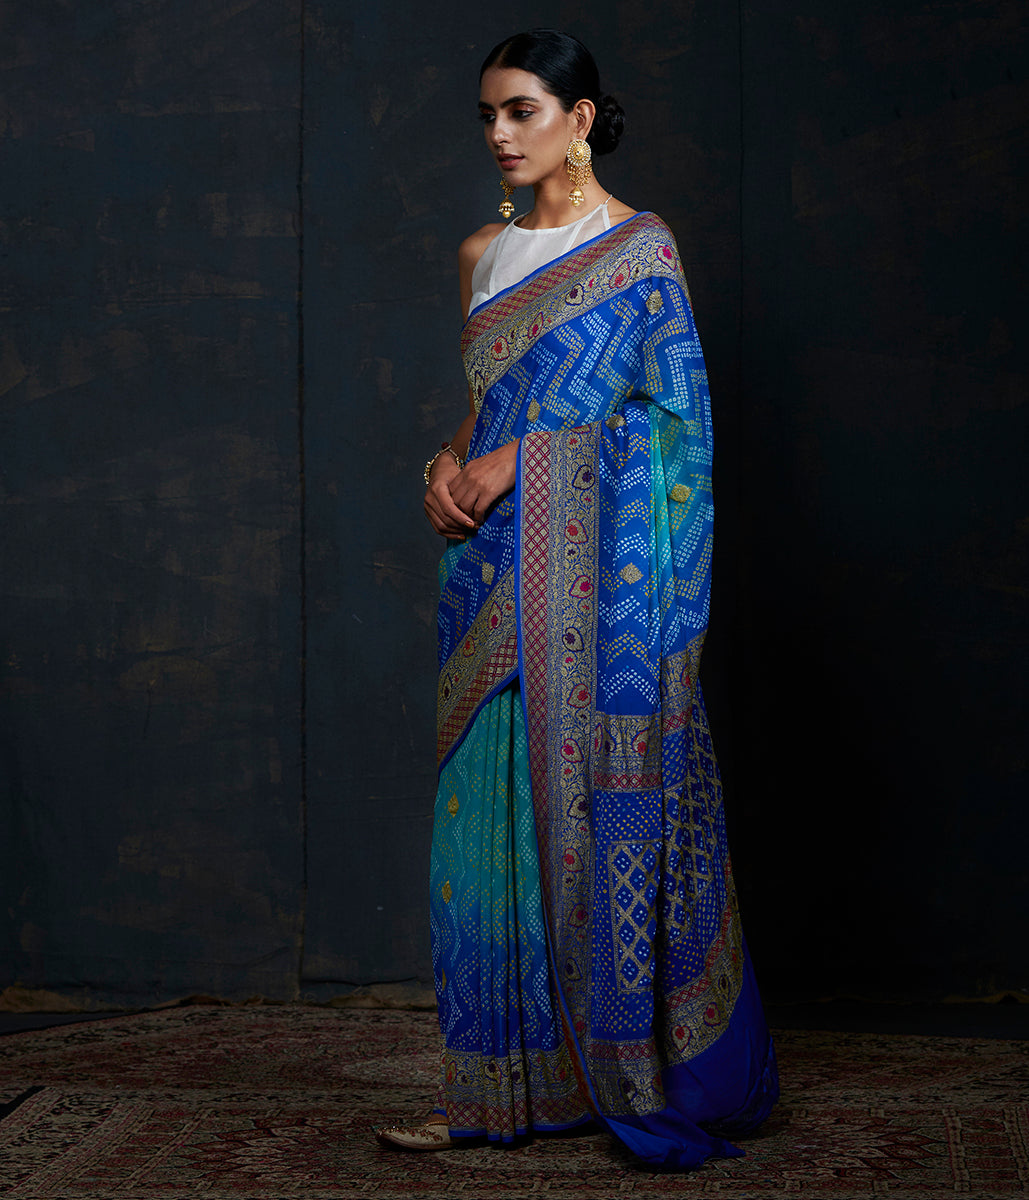 Blue Shaded Shikarpuri Banarasi Bandhej Saree with meenakari borders